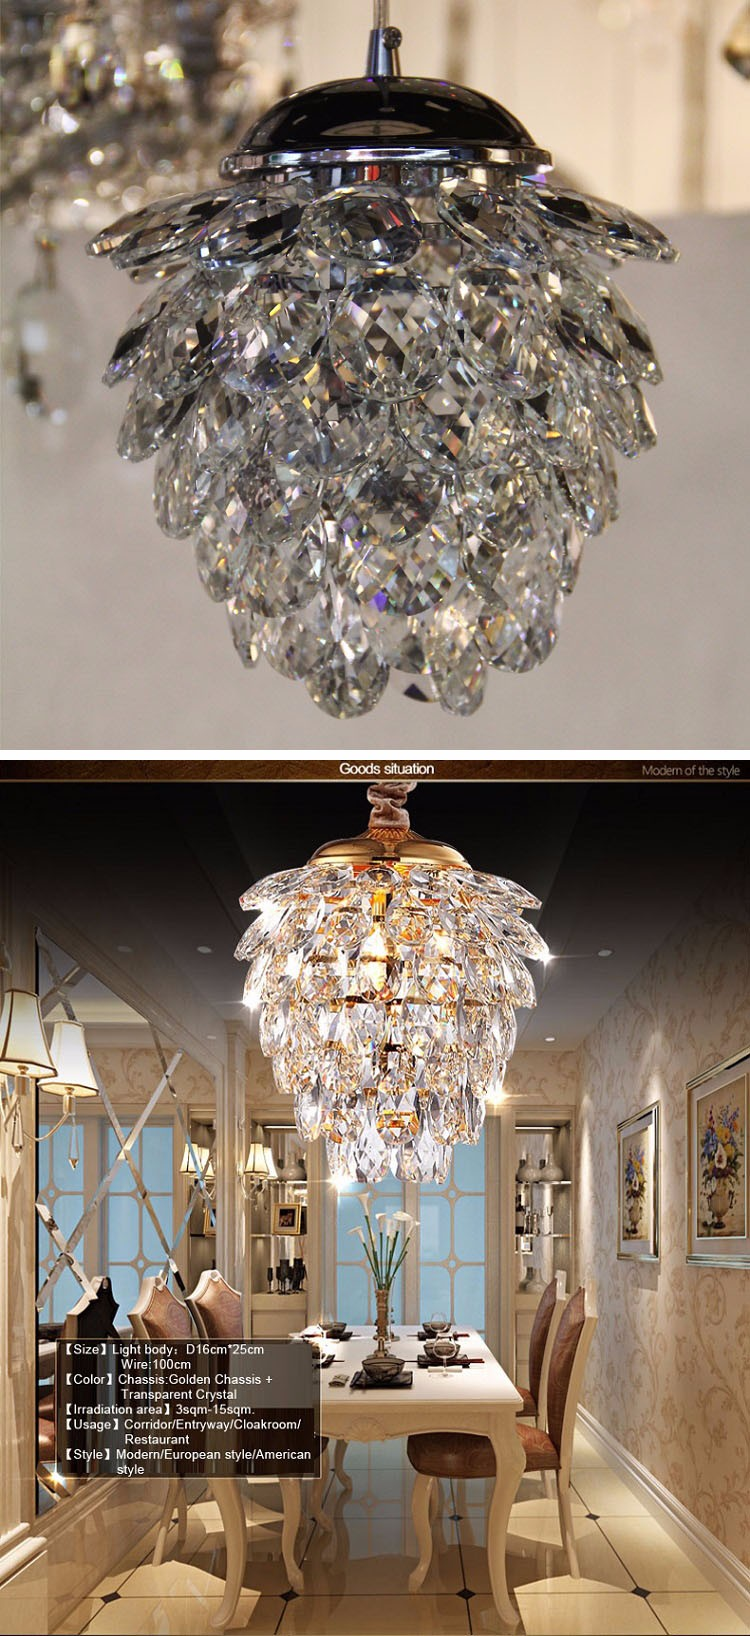 Philippines designer selected 3 lights cheap pinecone shape led philippines designer selected 3 lights cheap pinecone shape led crystal chandelier for living room arubaitofo Image collections